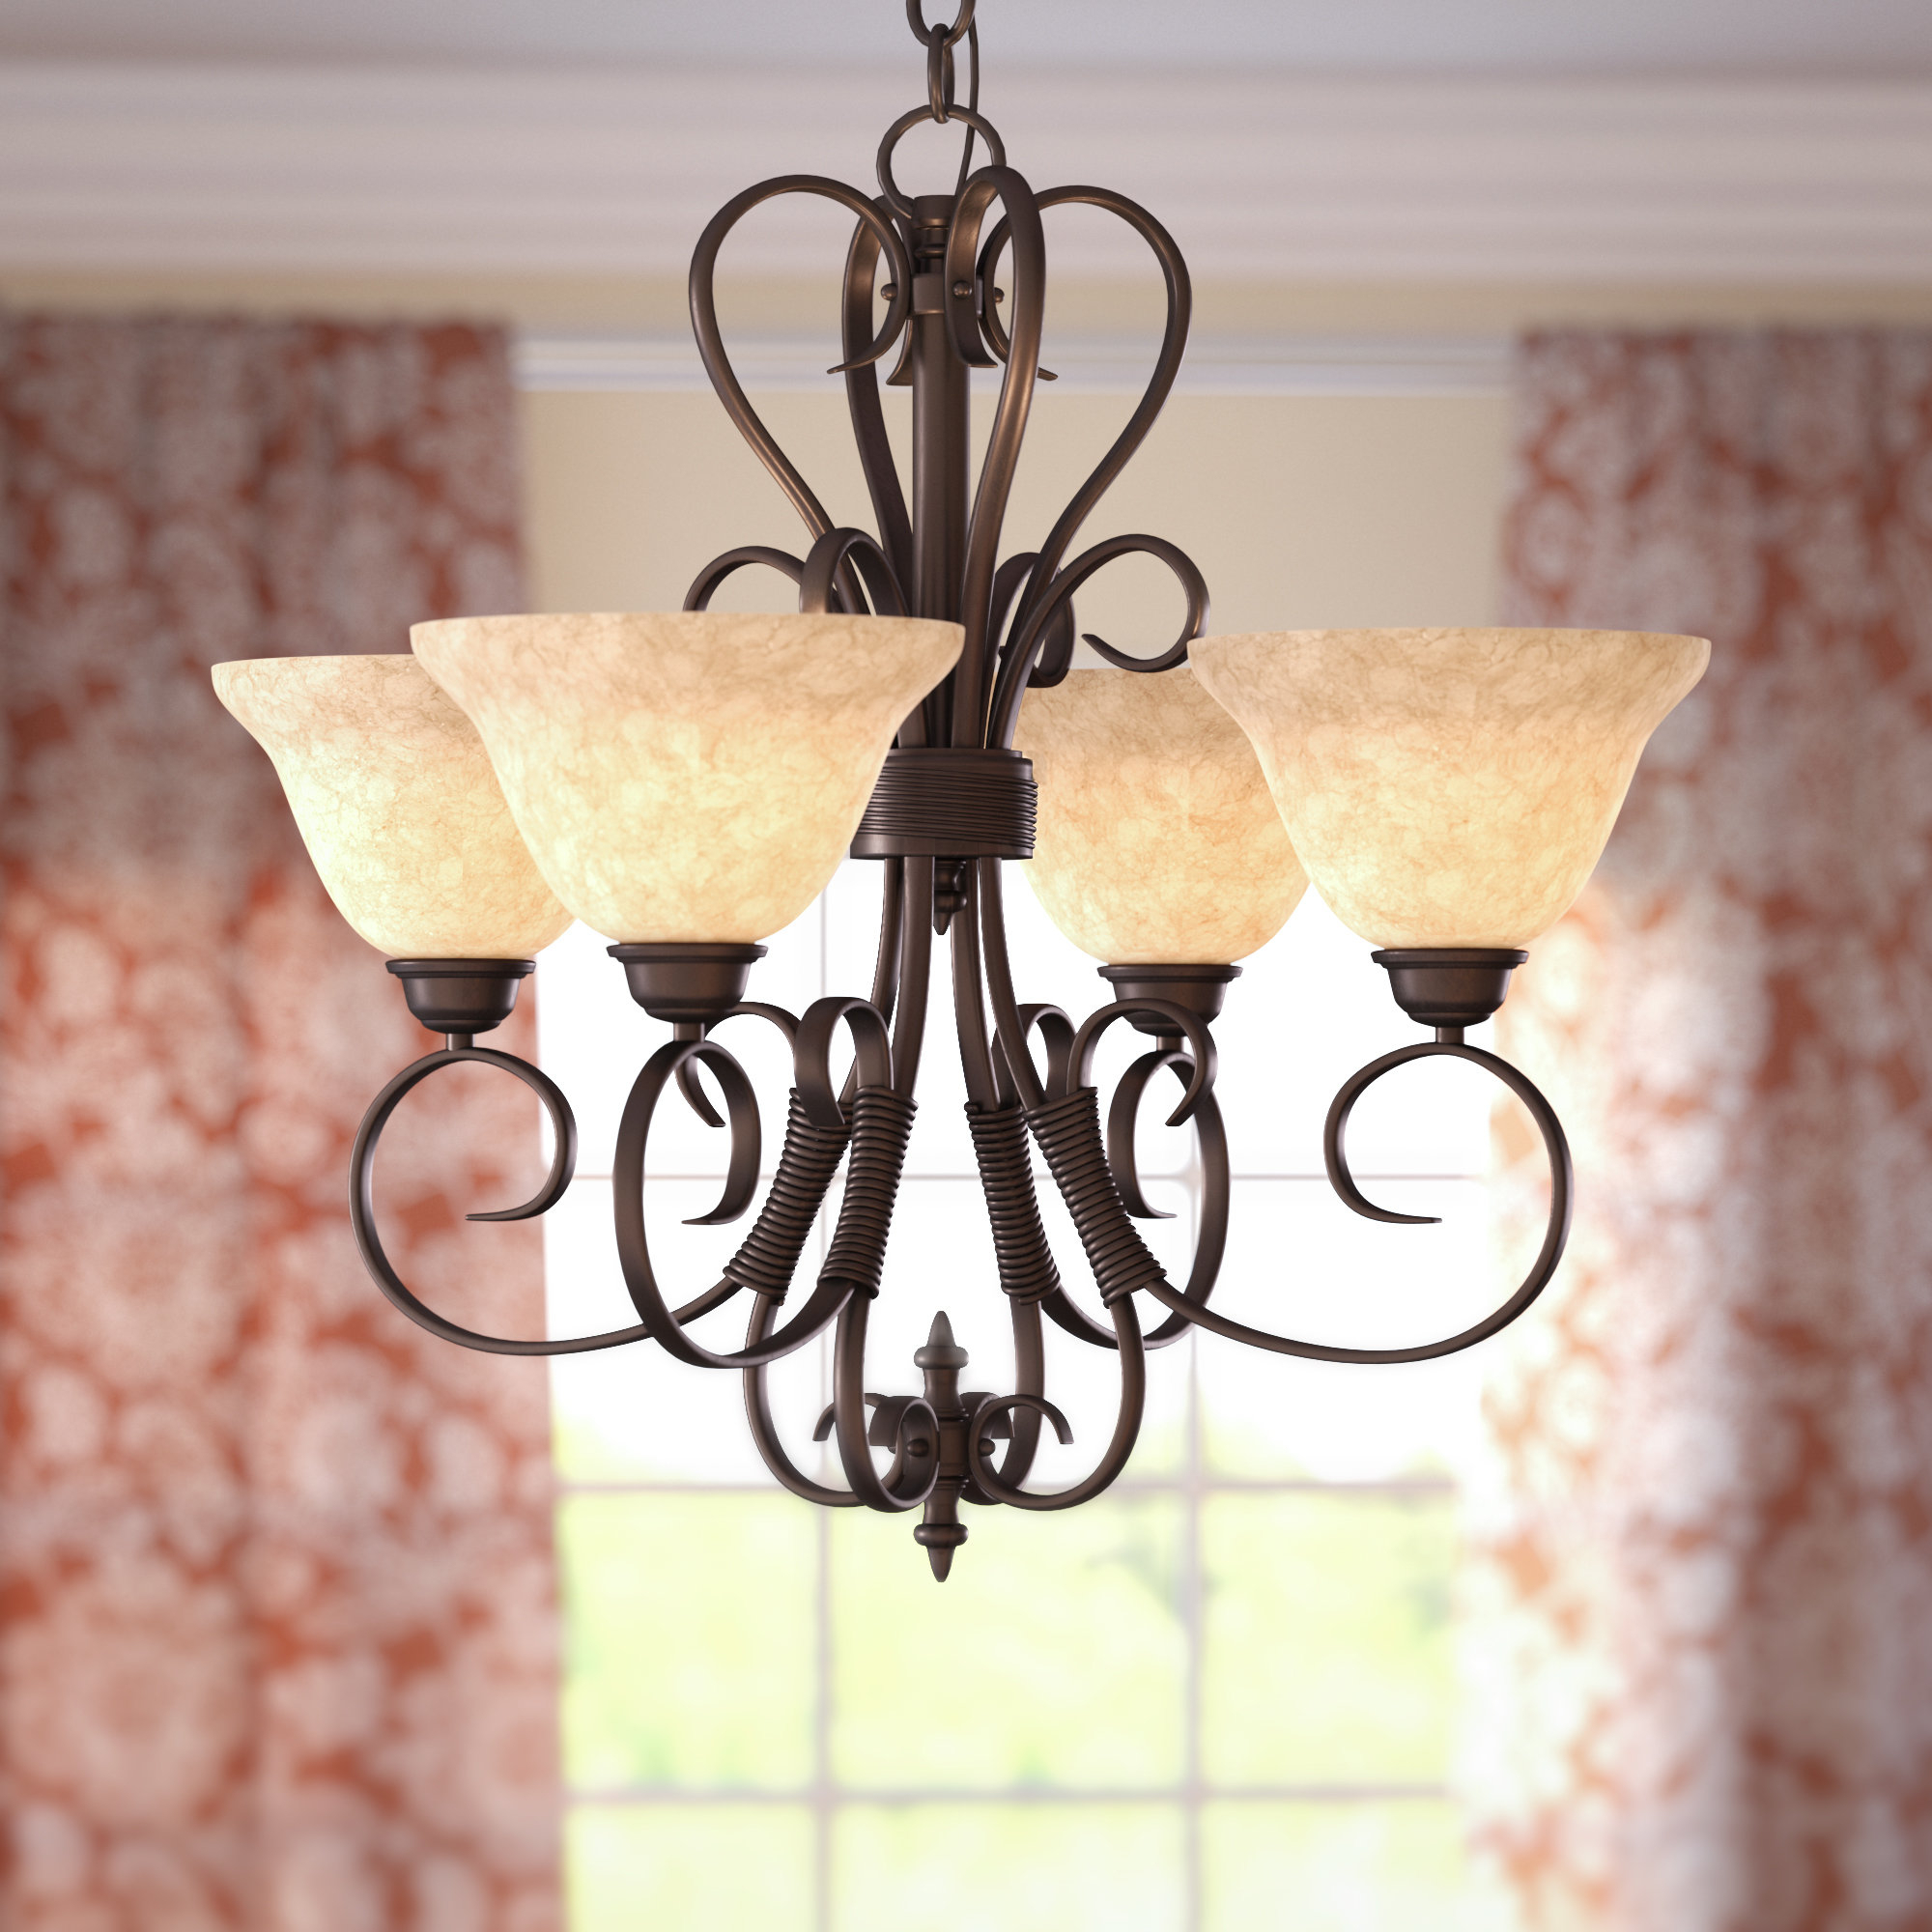 Gaines 5 Light Shaded Chandeliers For Best And Newest Gaines 4 Light Shaded Chandelier (View 7 of 20)